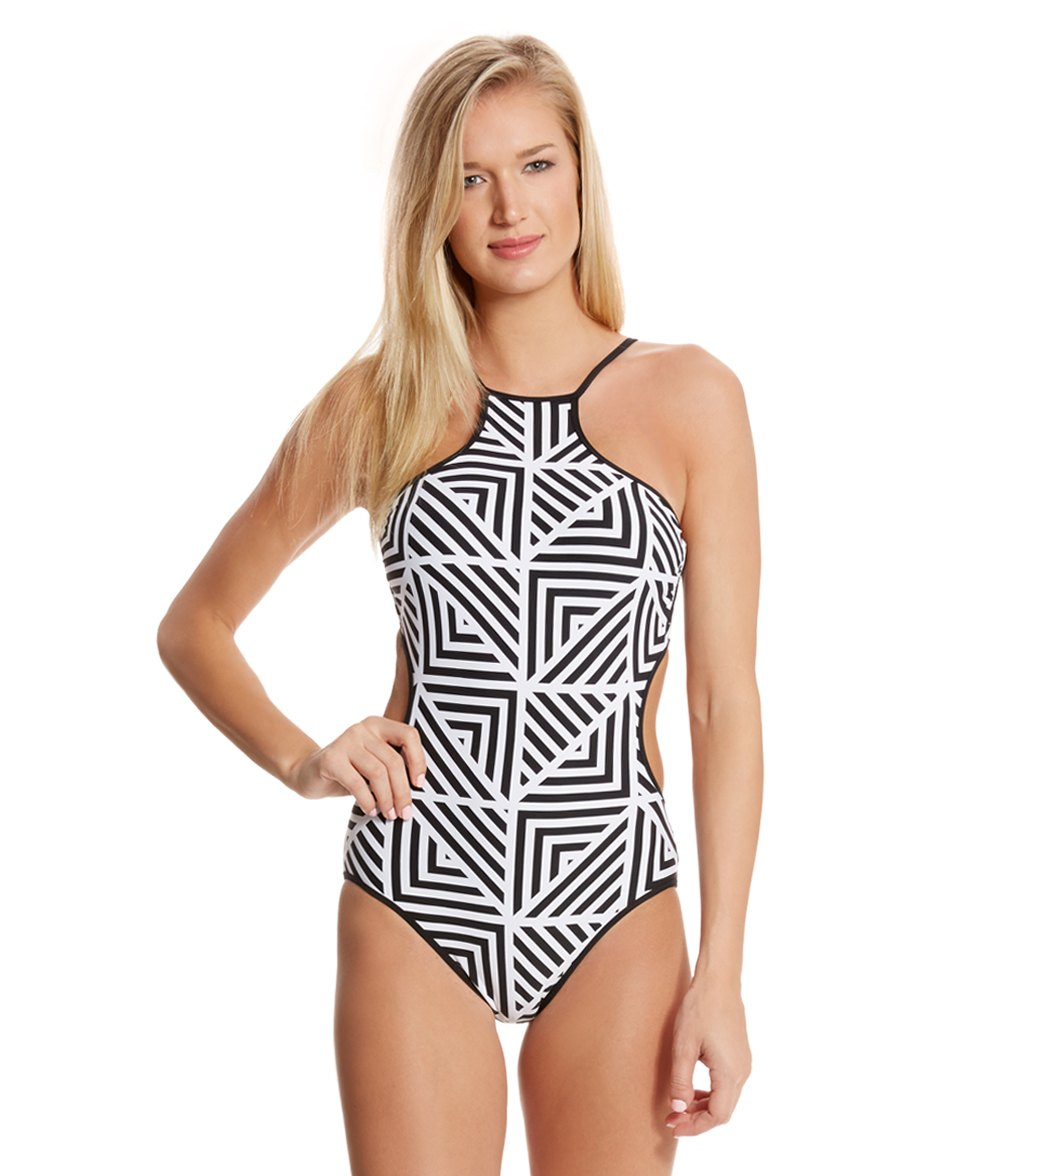 04afd0cef26c4 ... High Neck One Piece Swimsuit $182.00. Play Video. MODEL MEASUREMENTS